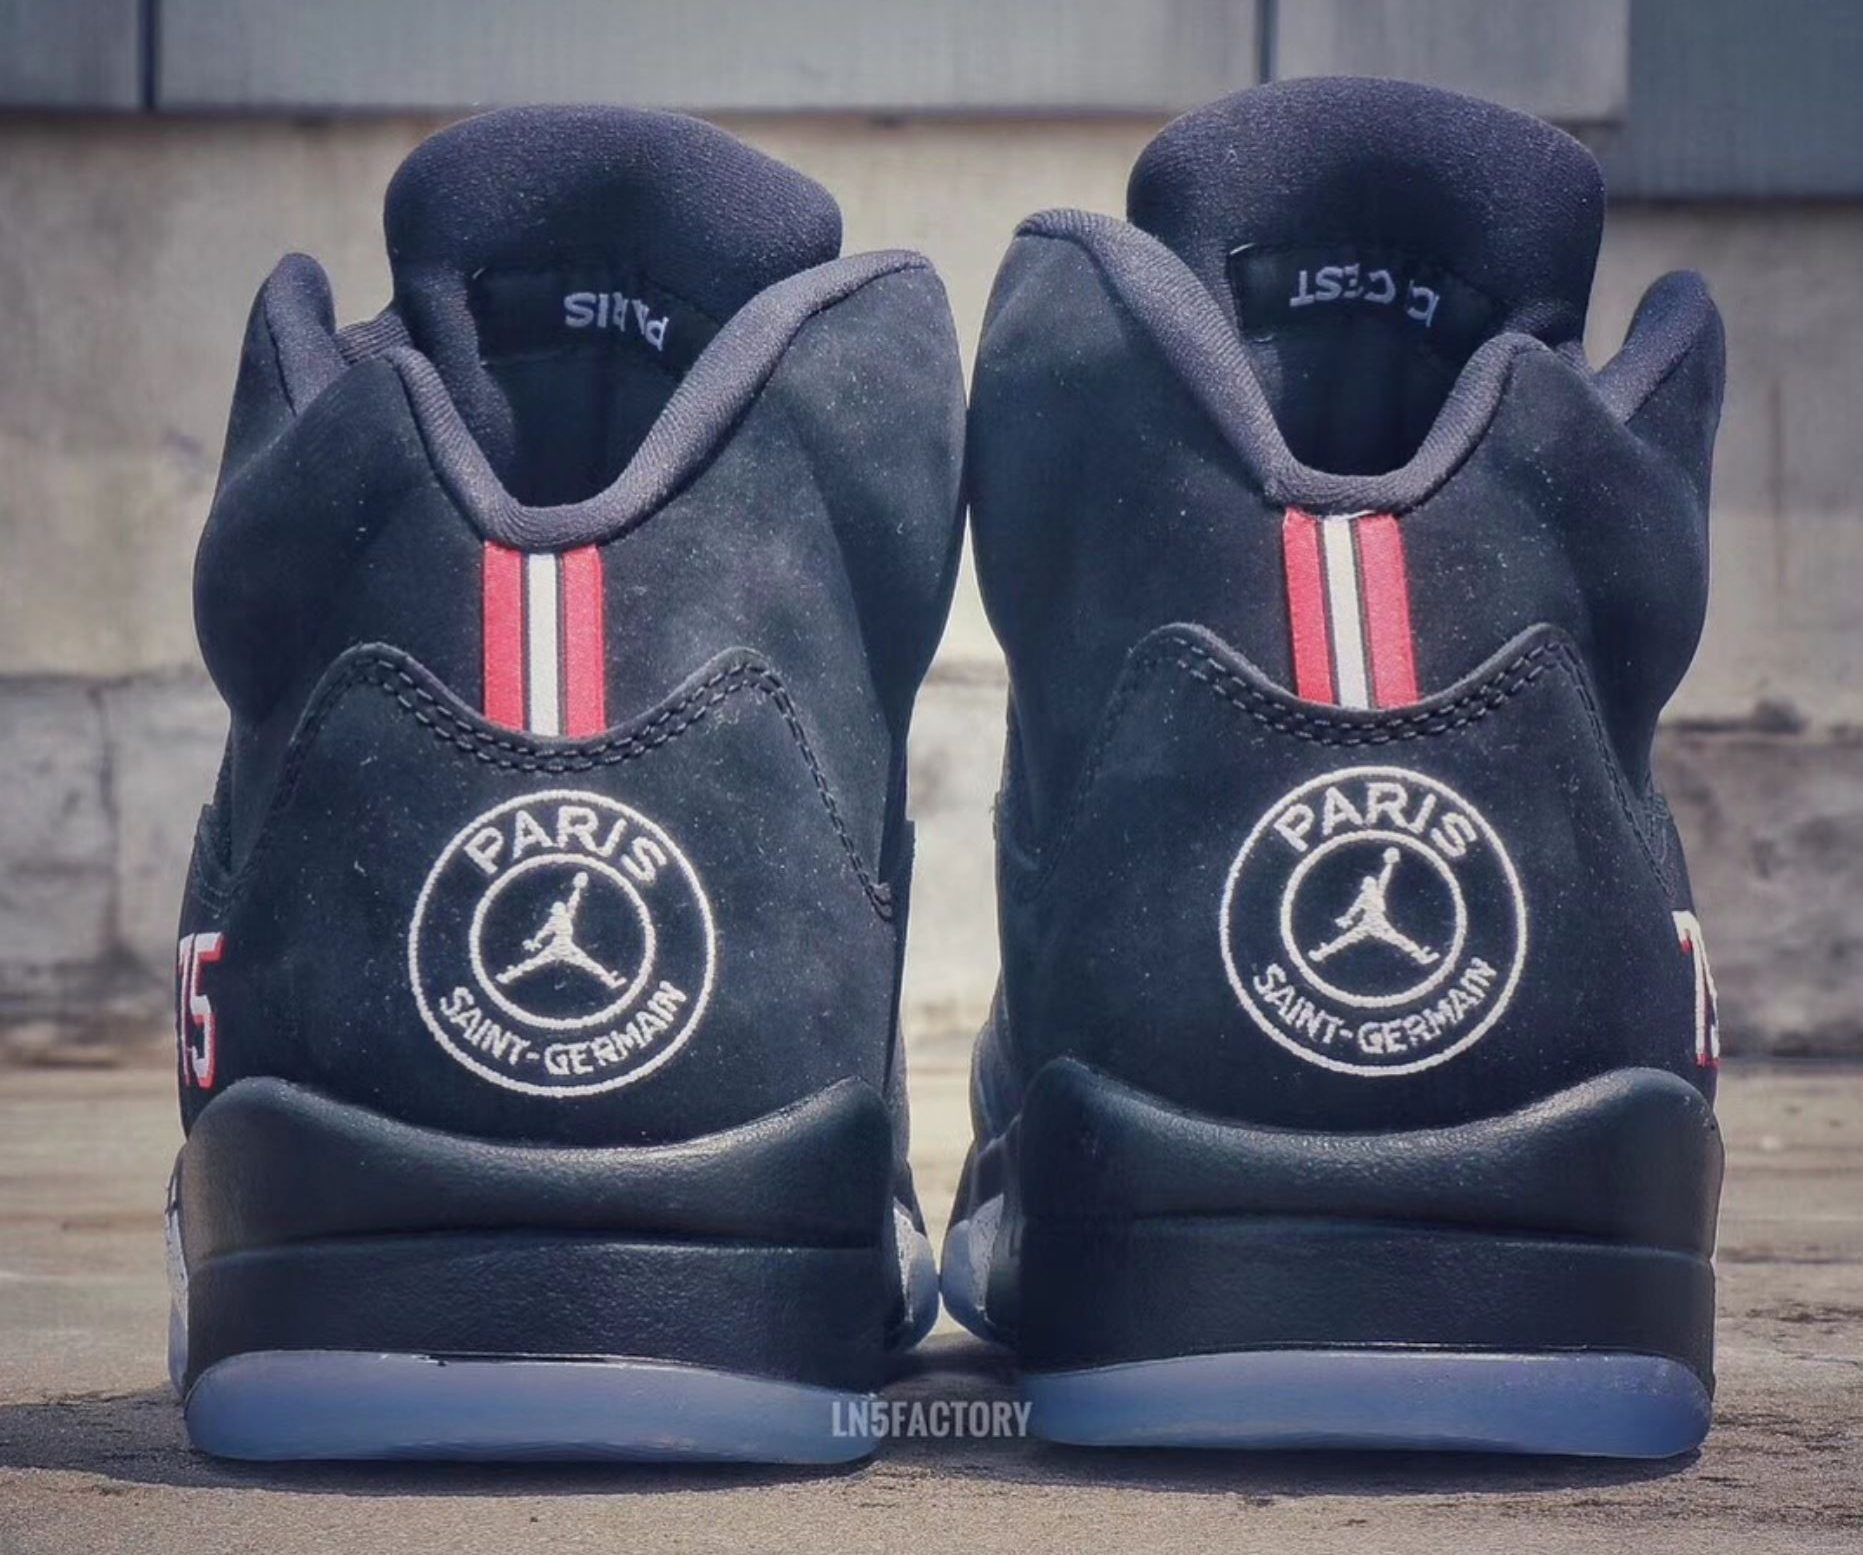 Mitones Vislumbrar Normalización  An Air Jordan 5 for Paris Saint-Germain Surfaces Online - WearTesters